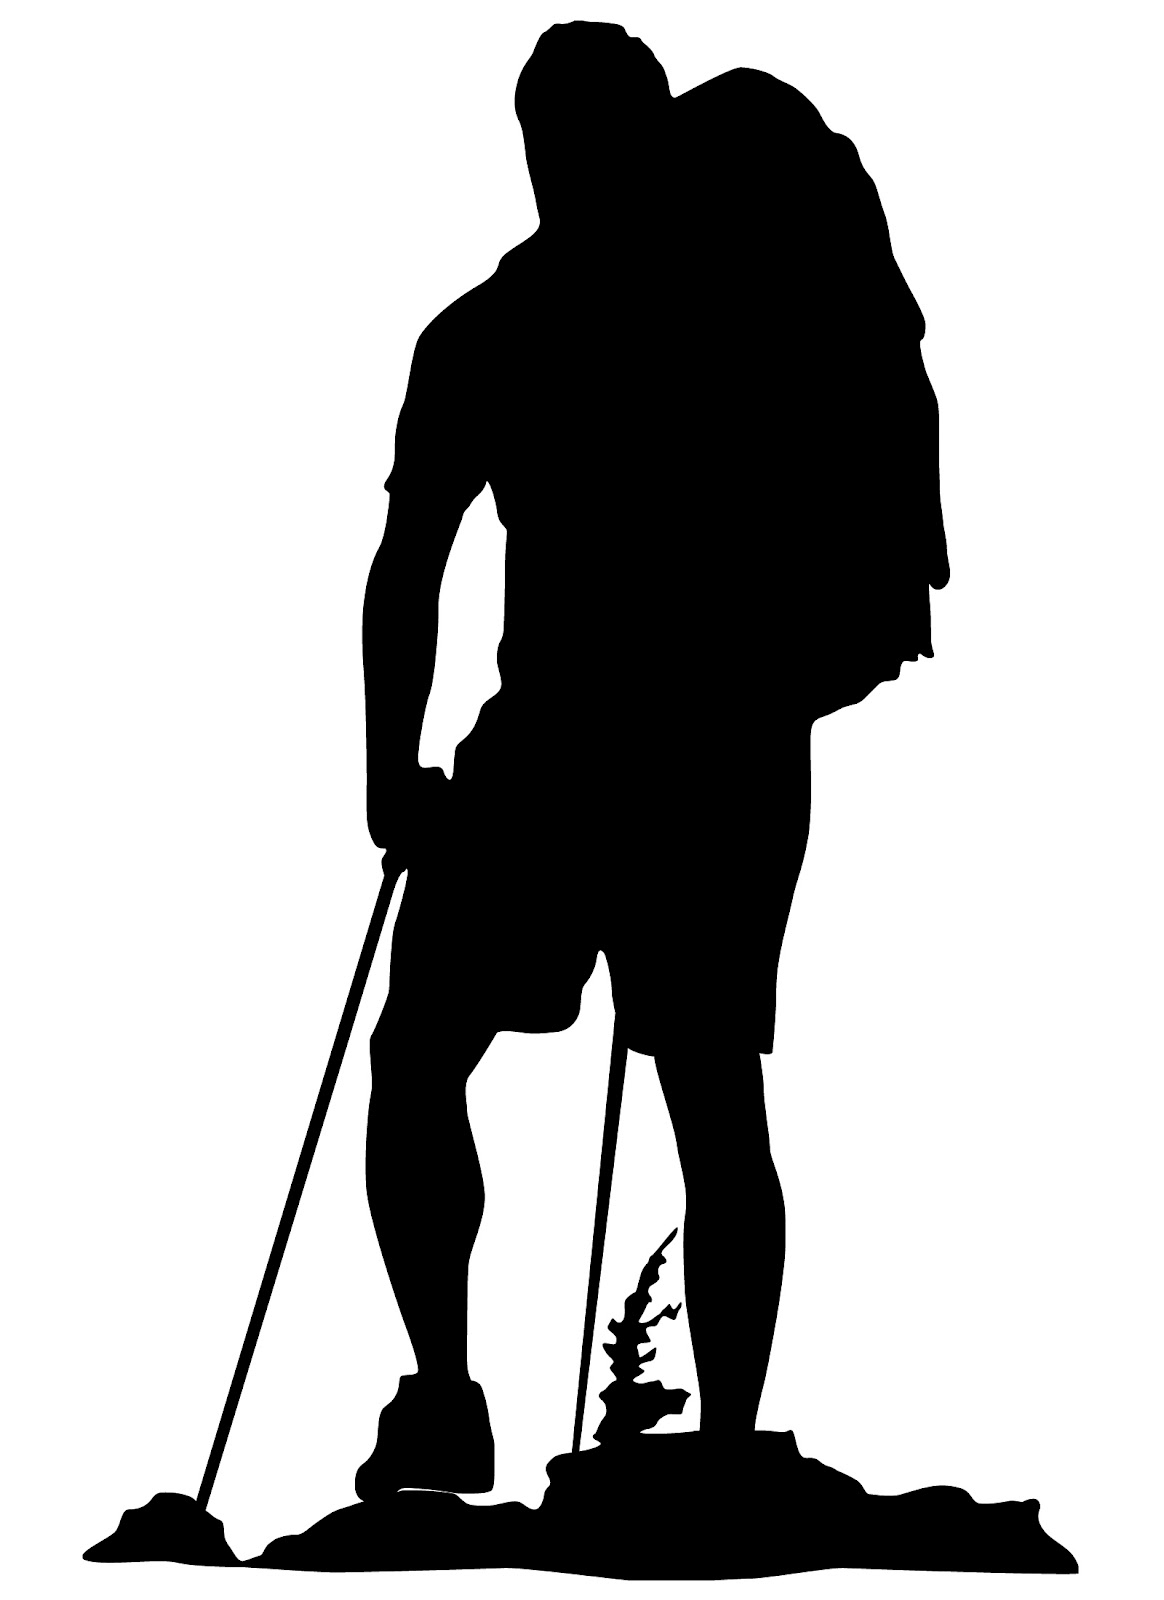 Hiking clipart #3, Download drawings